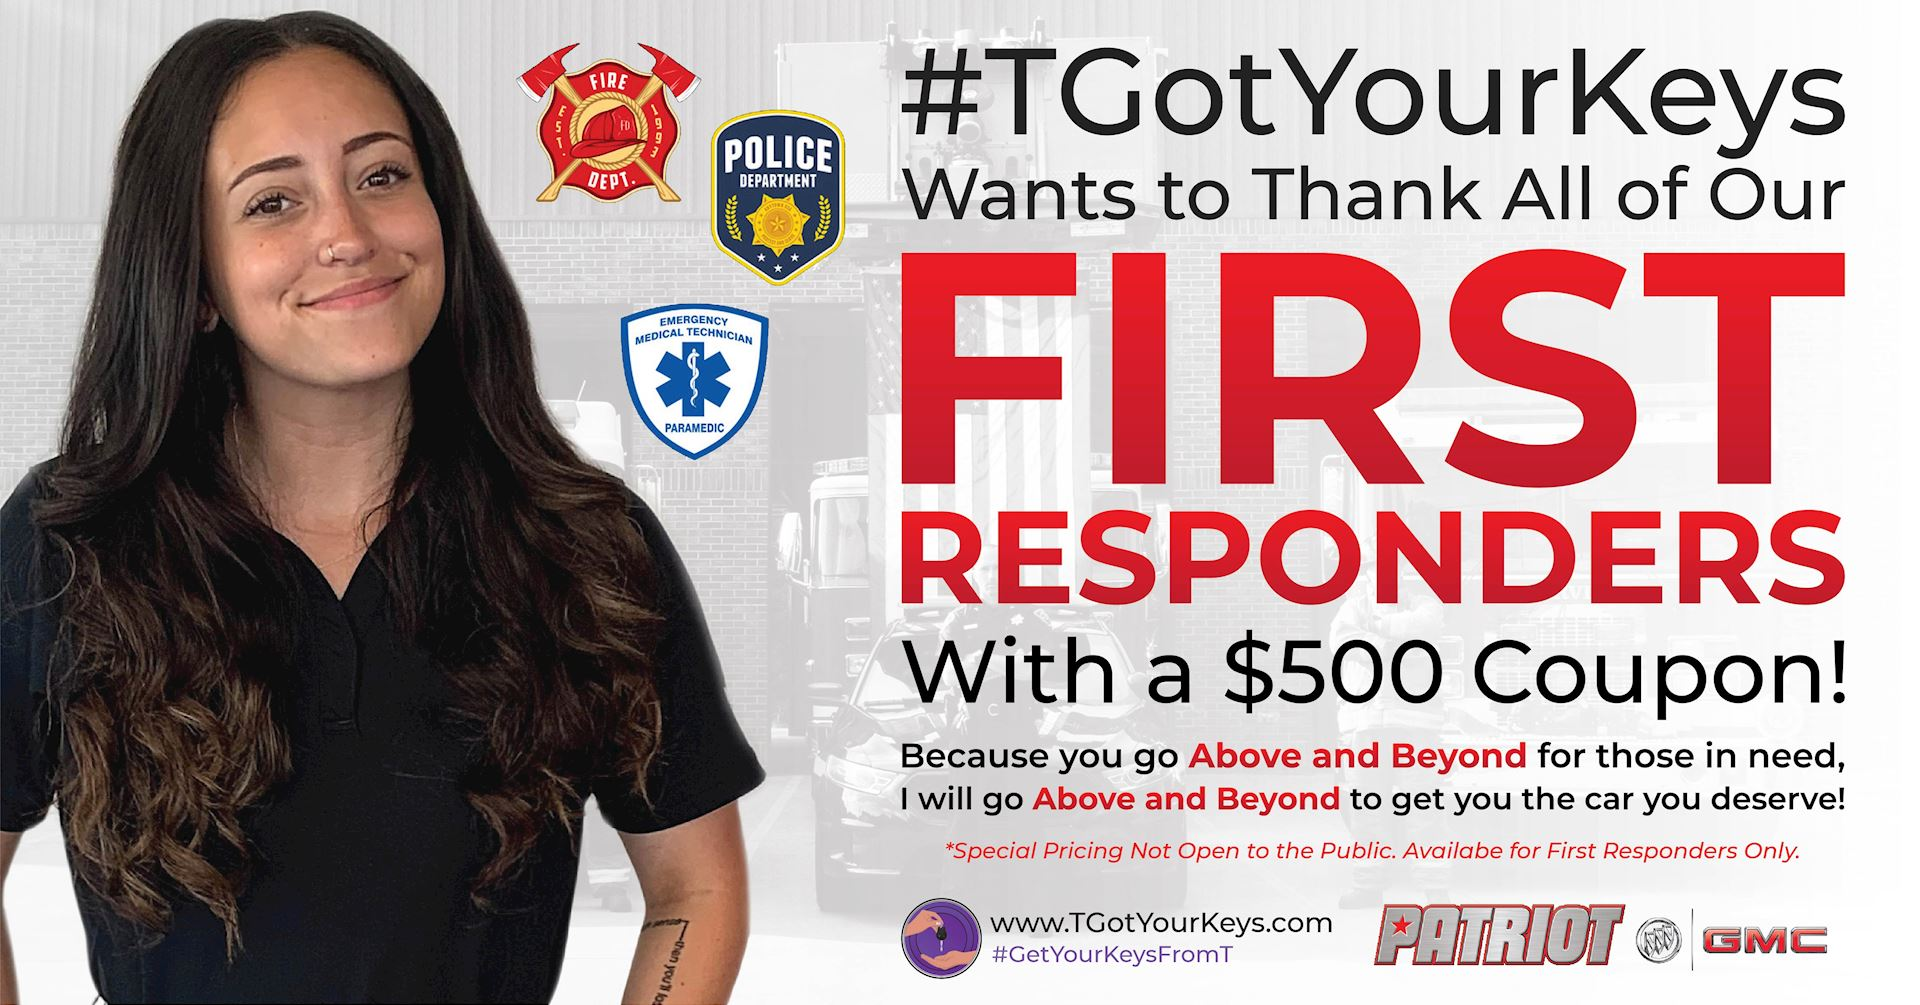 $500 OFF for First Responders!